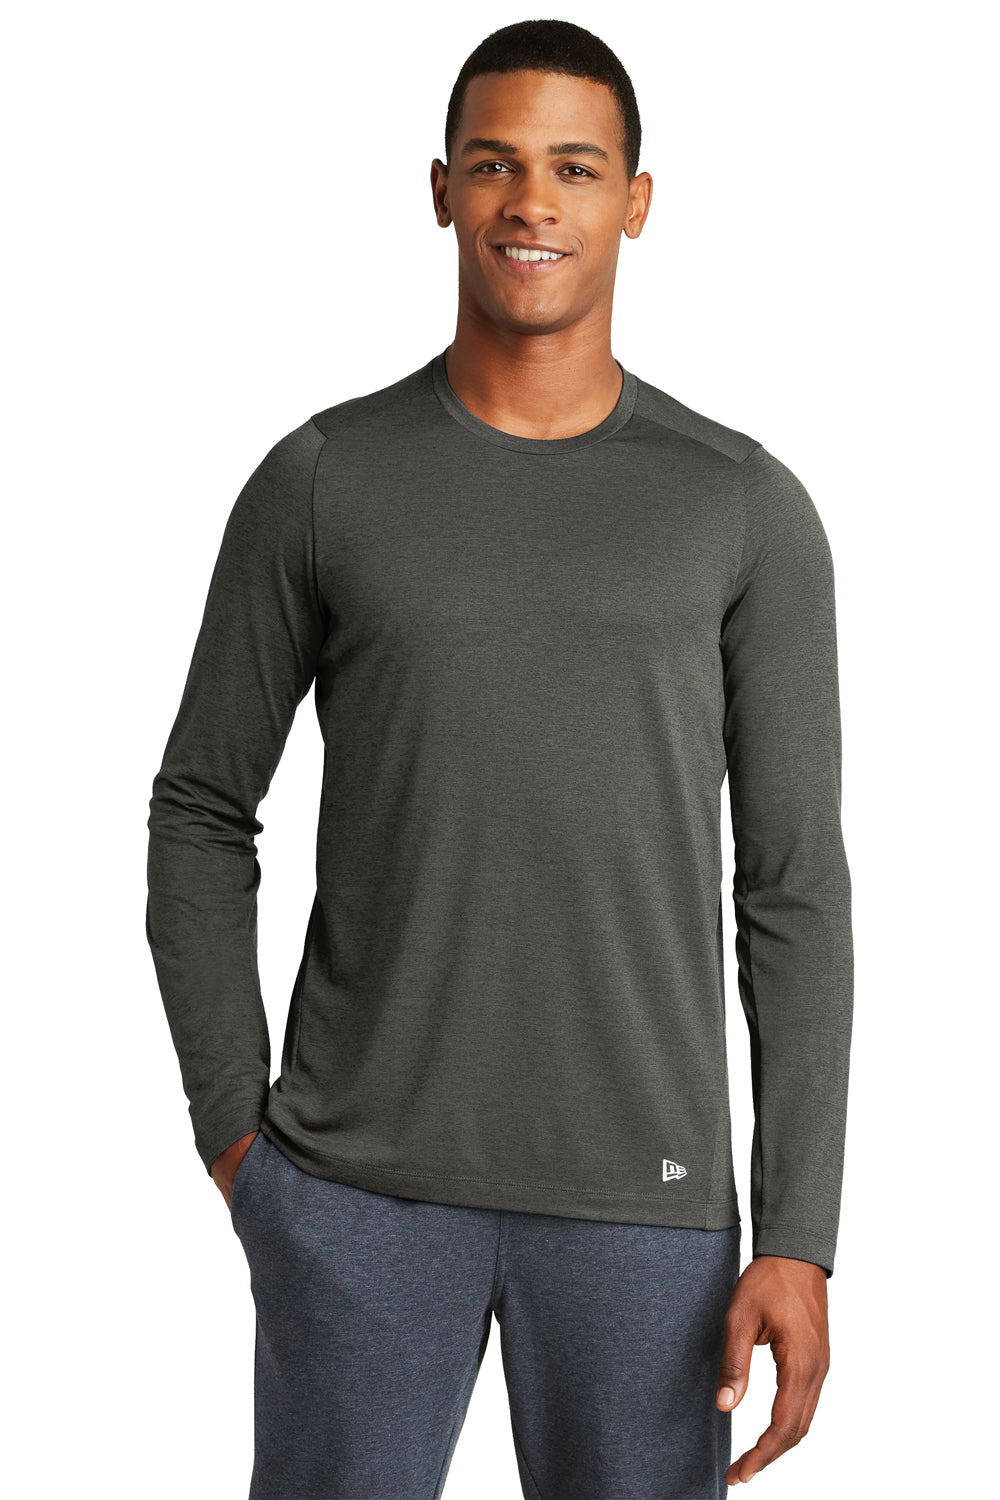 New Era NEA201 Mens Series Performance Moisture Wicking Long Sleeve Crewneck T-Shirt Graphite Grey Front